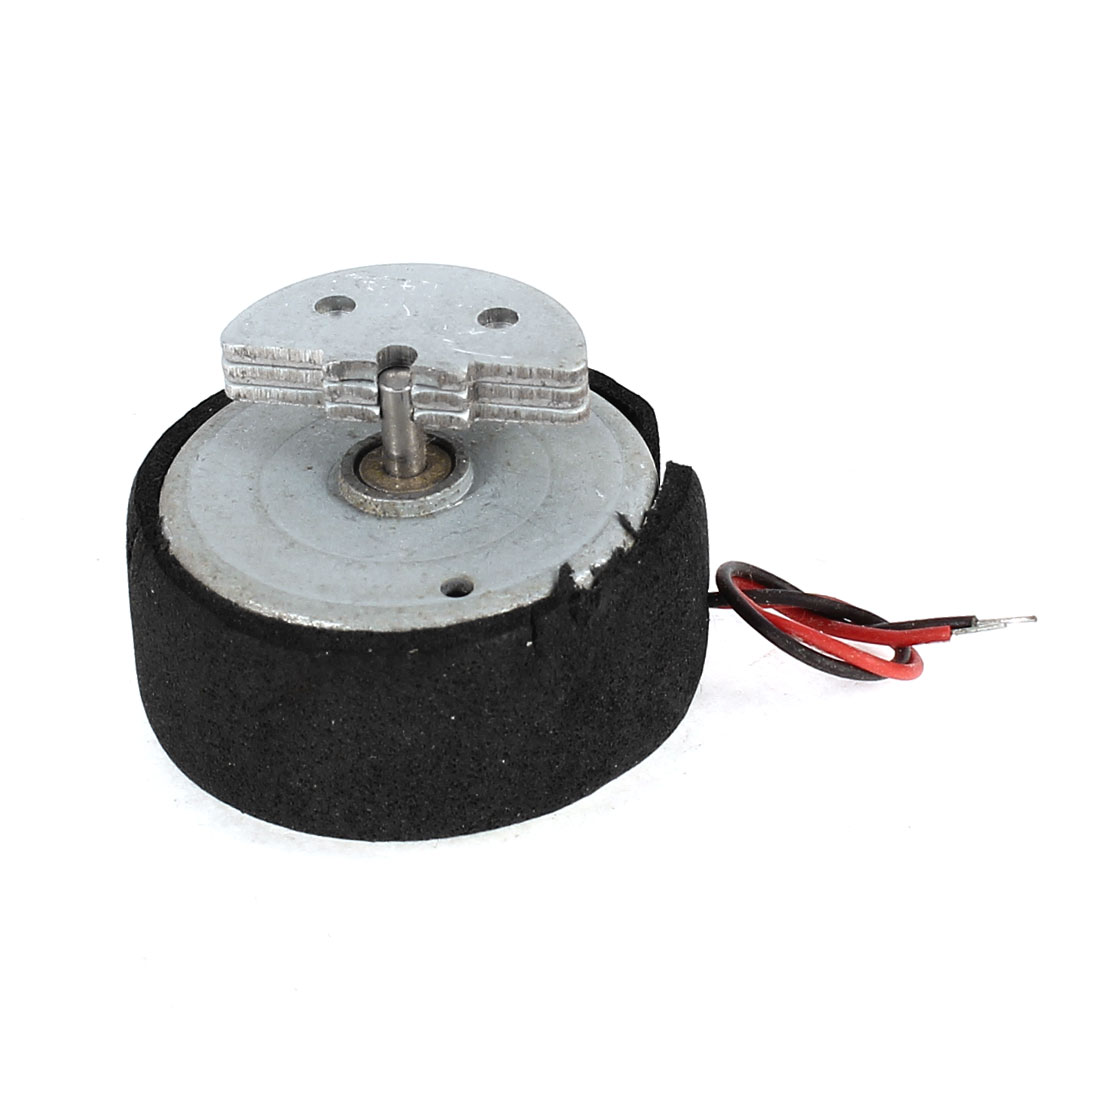 Vibration Vibrating Electric Micro Motor 3500RPM DC 1.5-6V for Game Devices